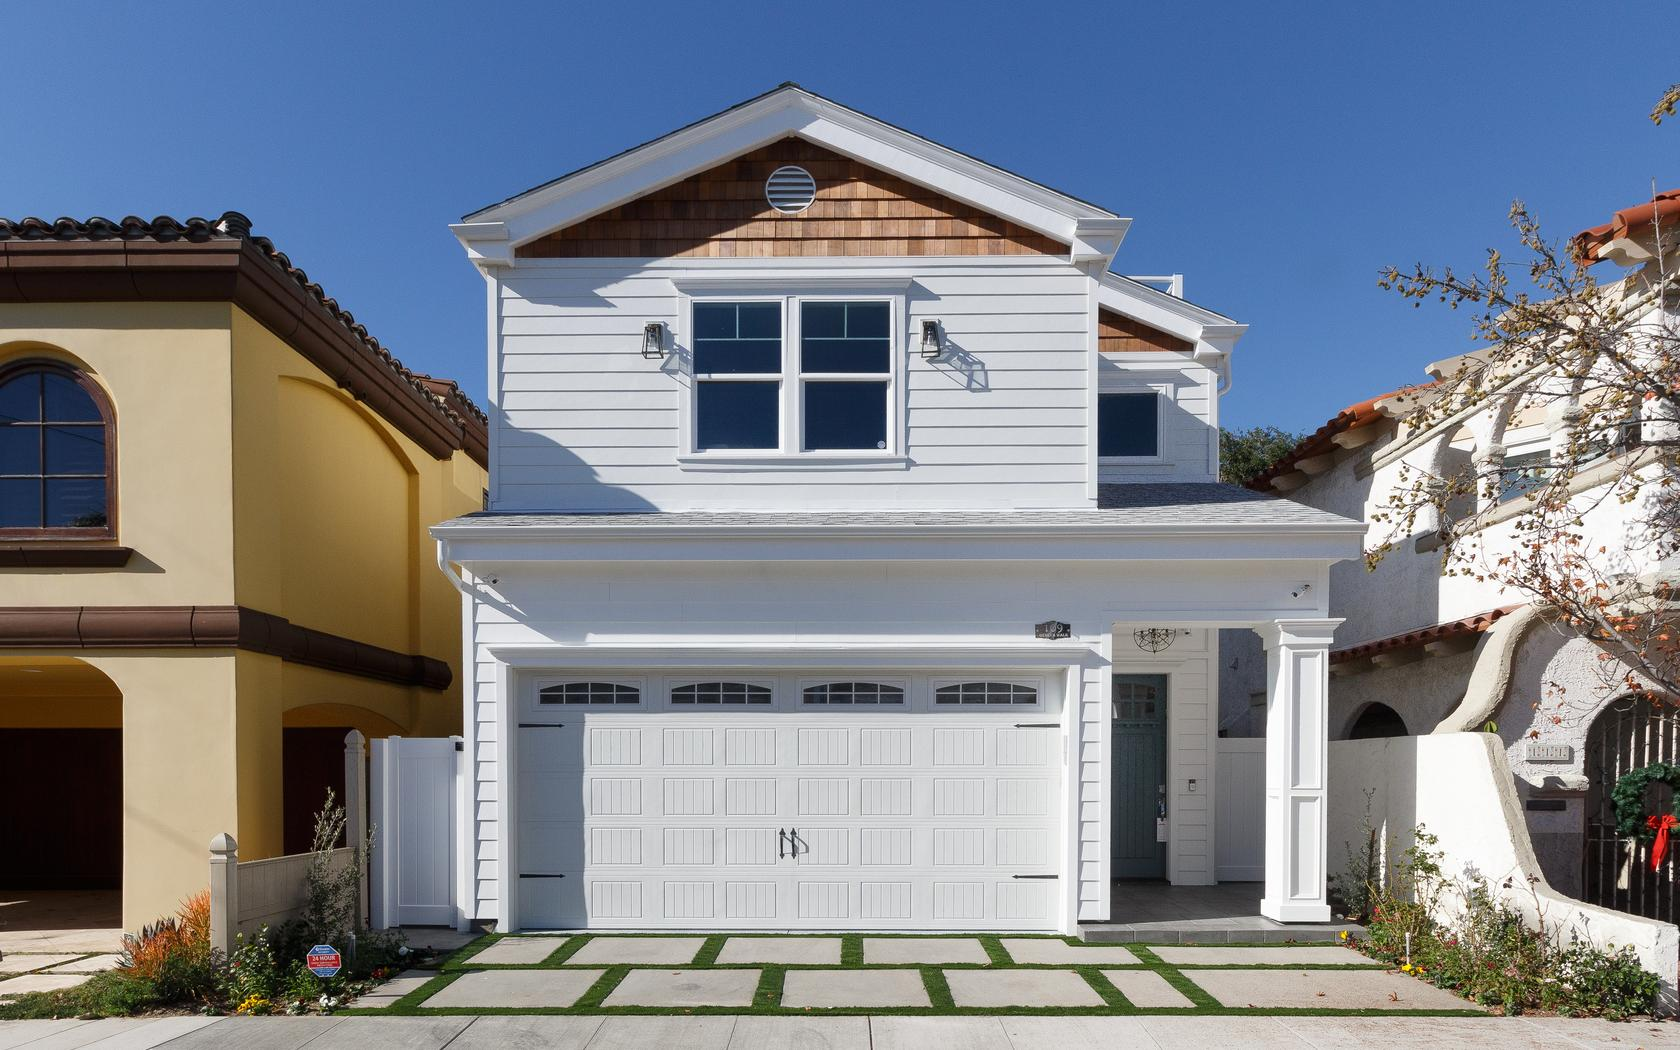 Long Beach,California,United States,4 Bedrooms Bedrooms,4 BathroomsBathrooms,House,1031